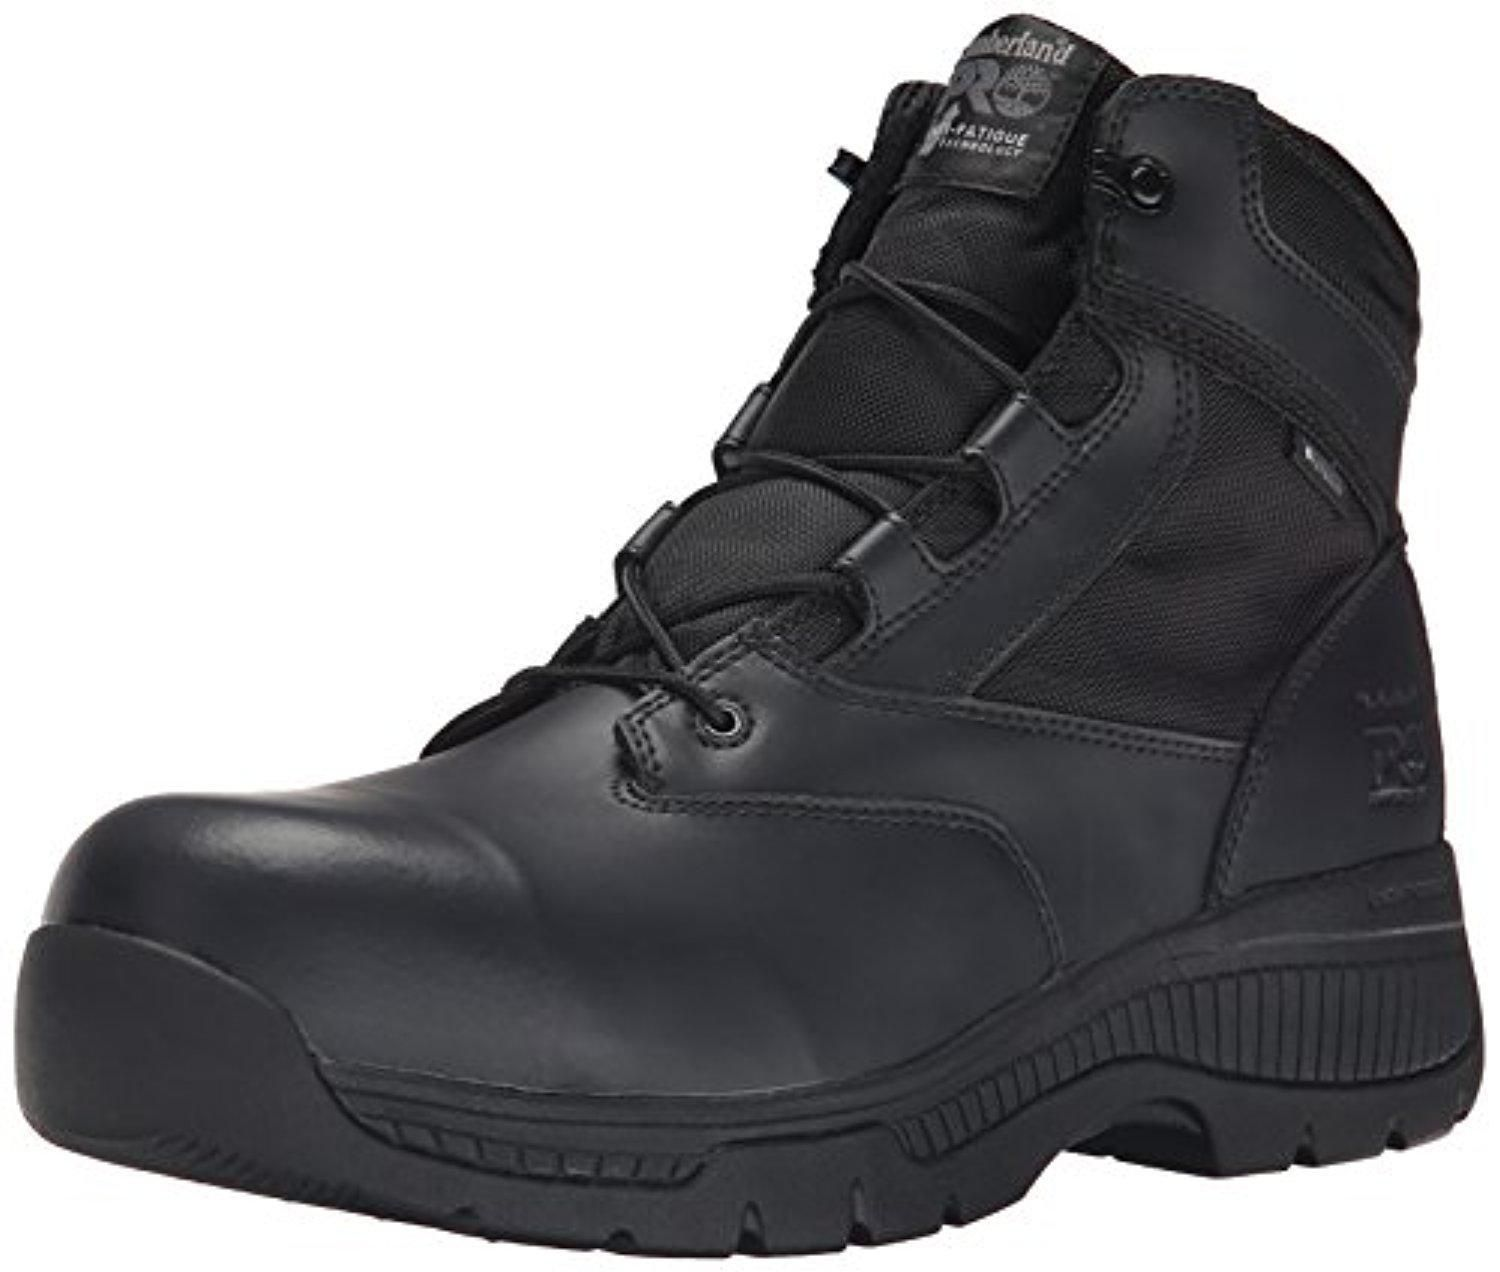 3824725e658 Timberland PRO Men's 6 Inch Valor Comp Toe WP Side Zip Work Boot ...